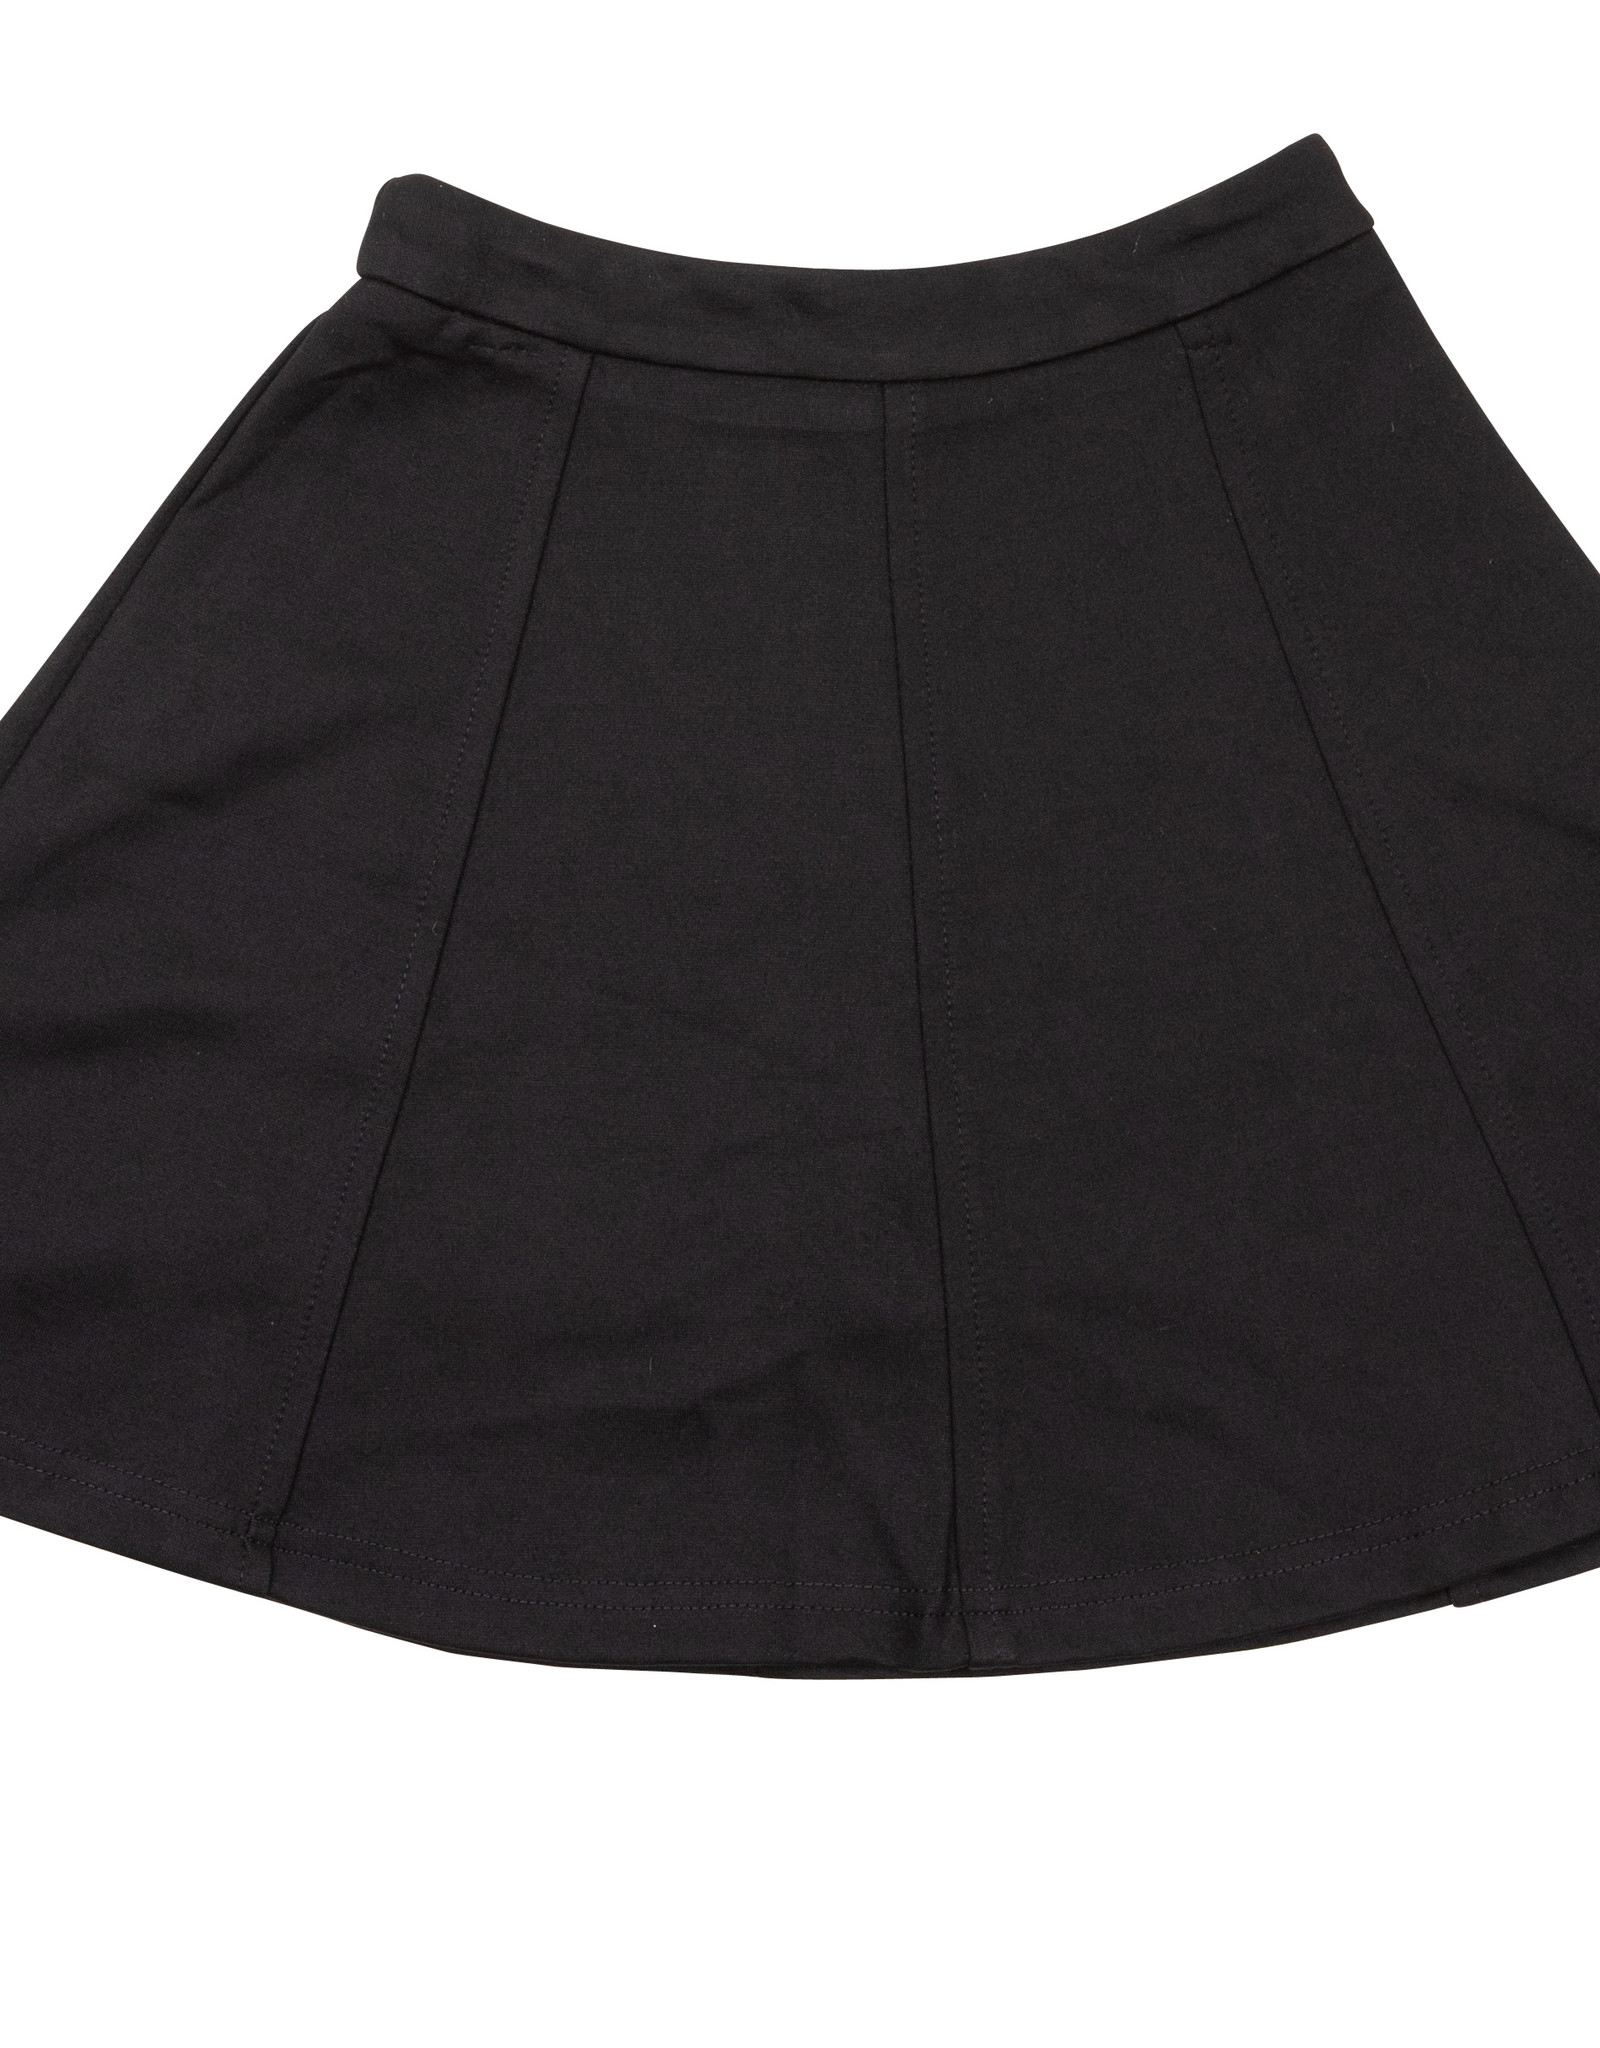 Smile Everyday Smile Everyday 8 Panel Skirt